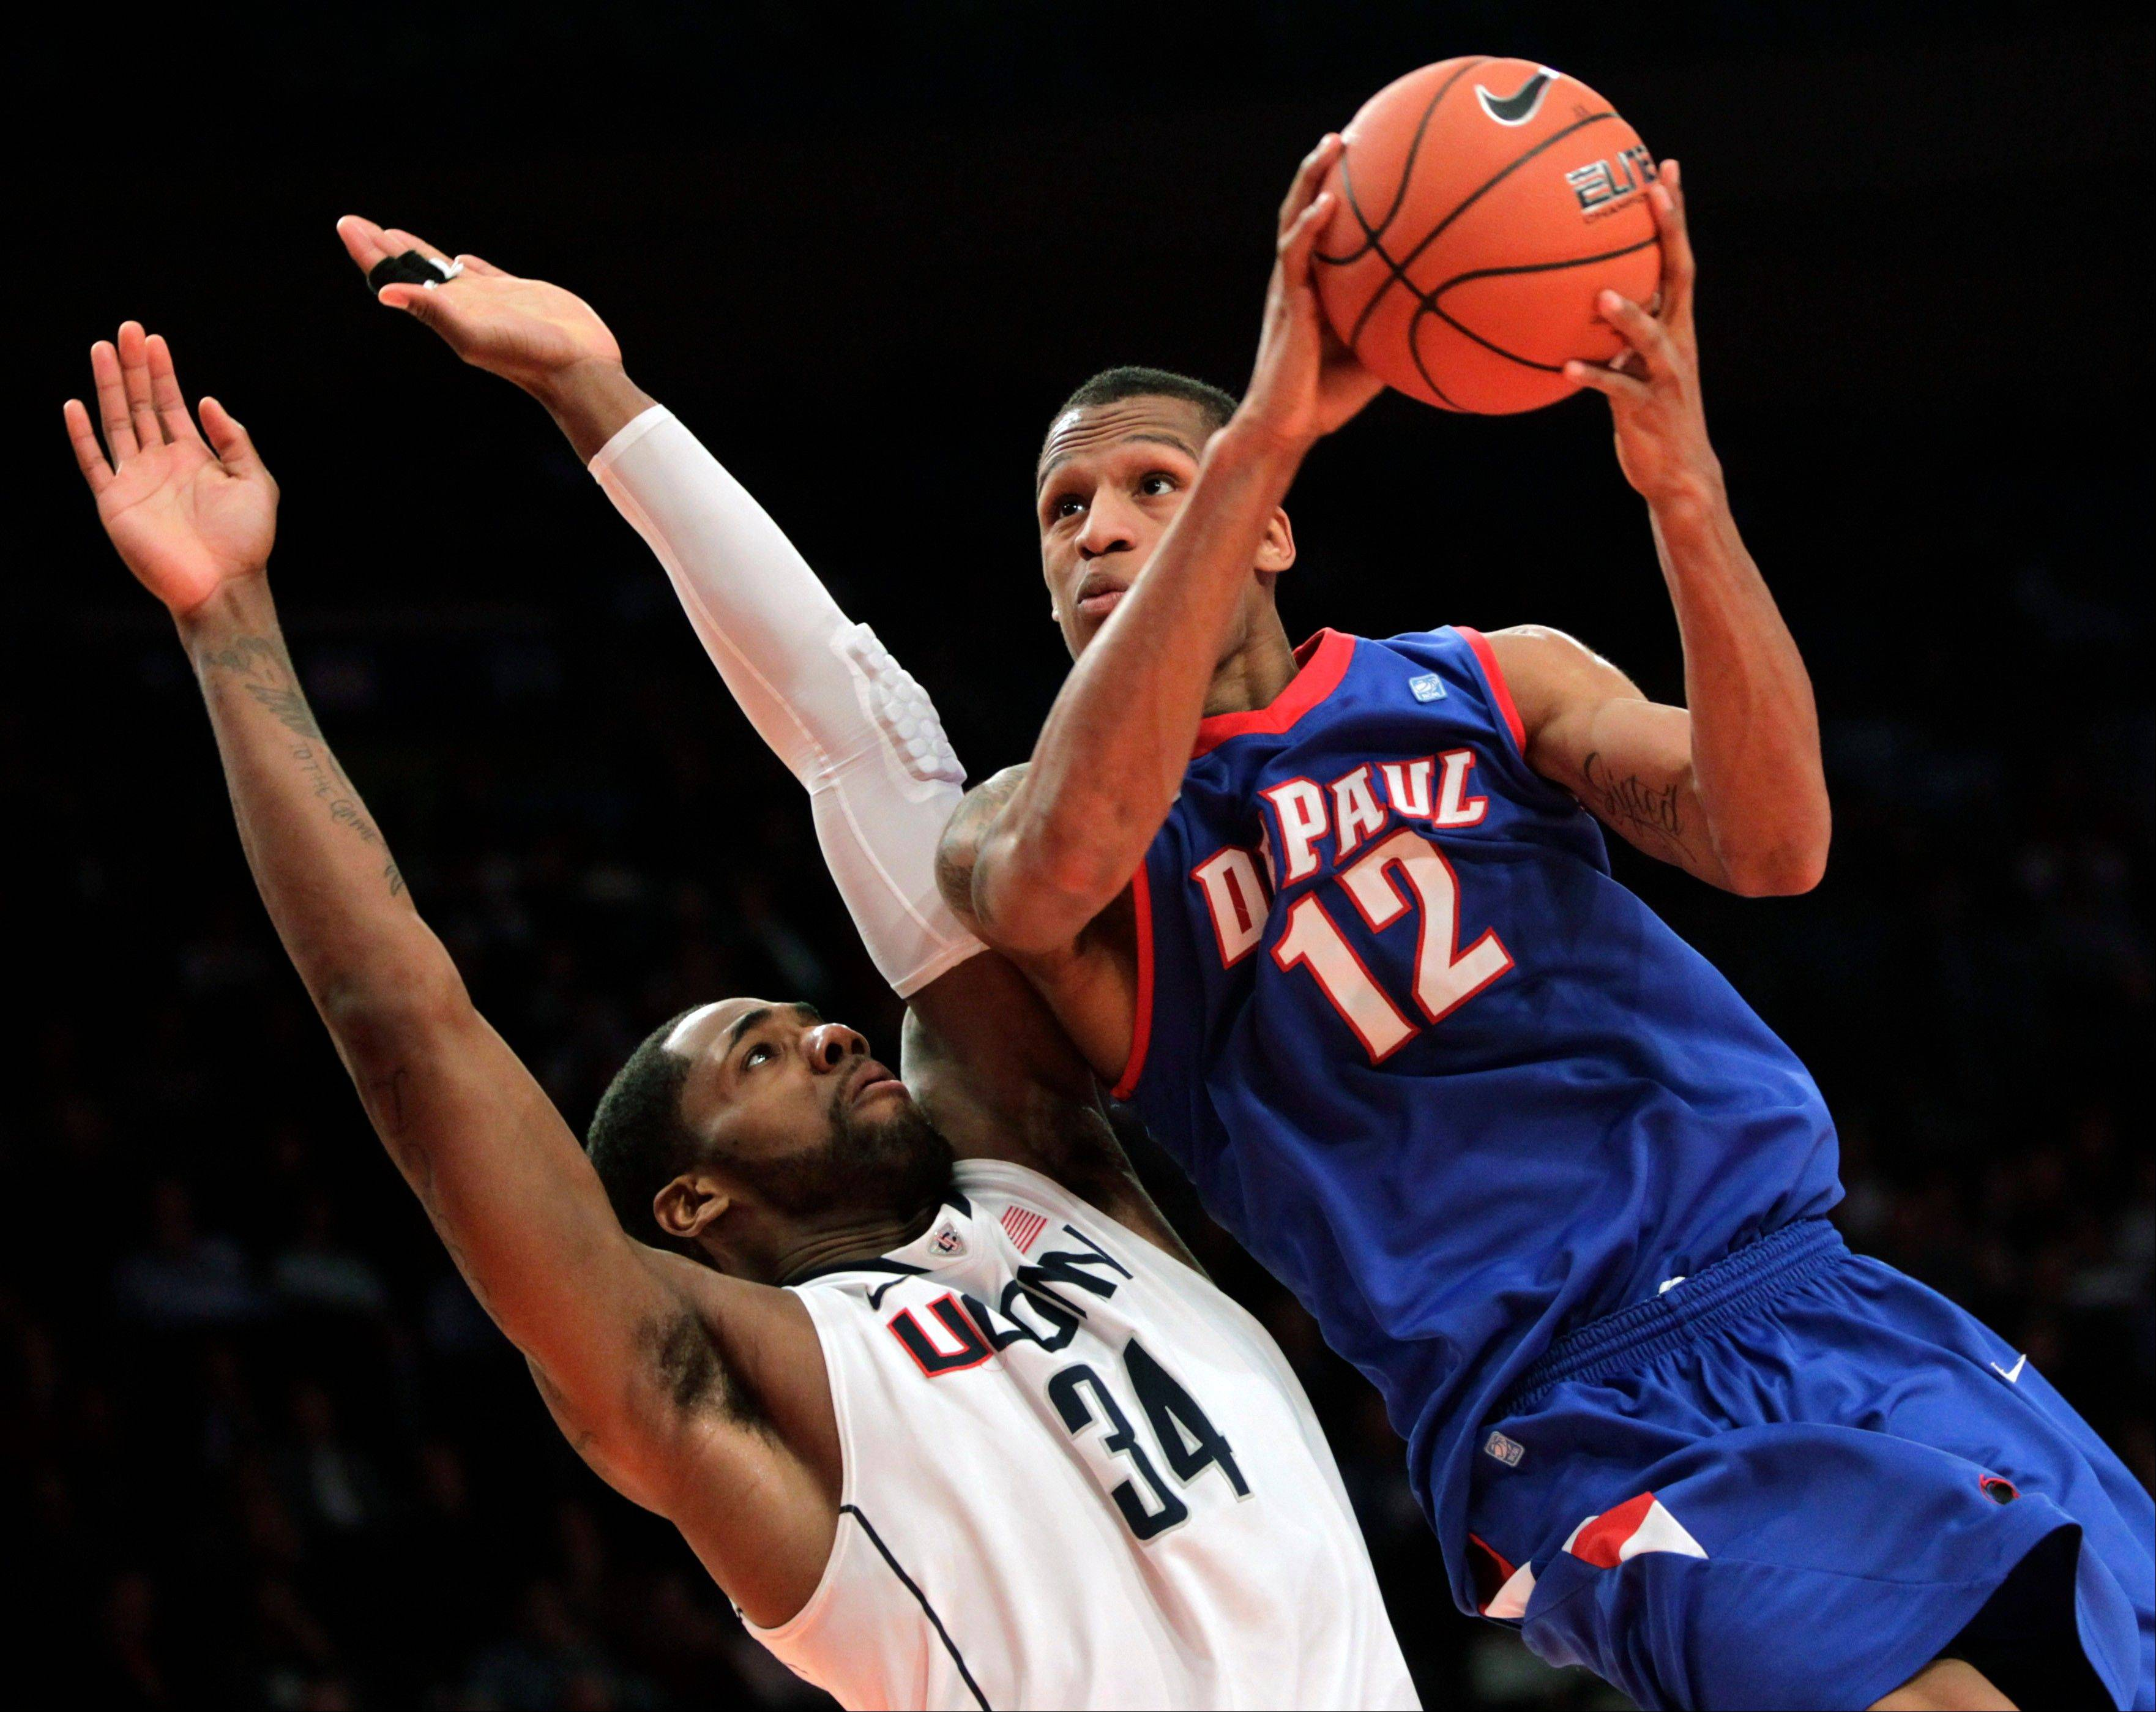 DePaul's Cleveland Melvin tries to score past Connecticut's Alex Oriakhi Tuesday during the first round of the Big East NCAA college basketball conference tournament game.